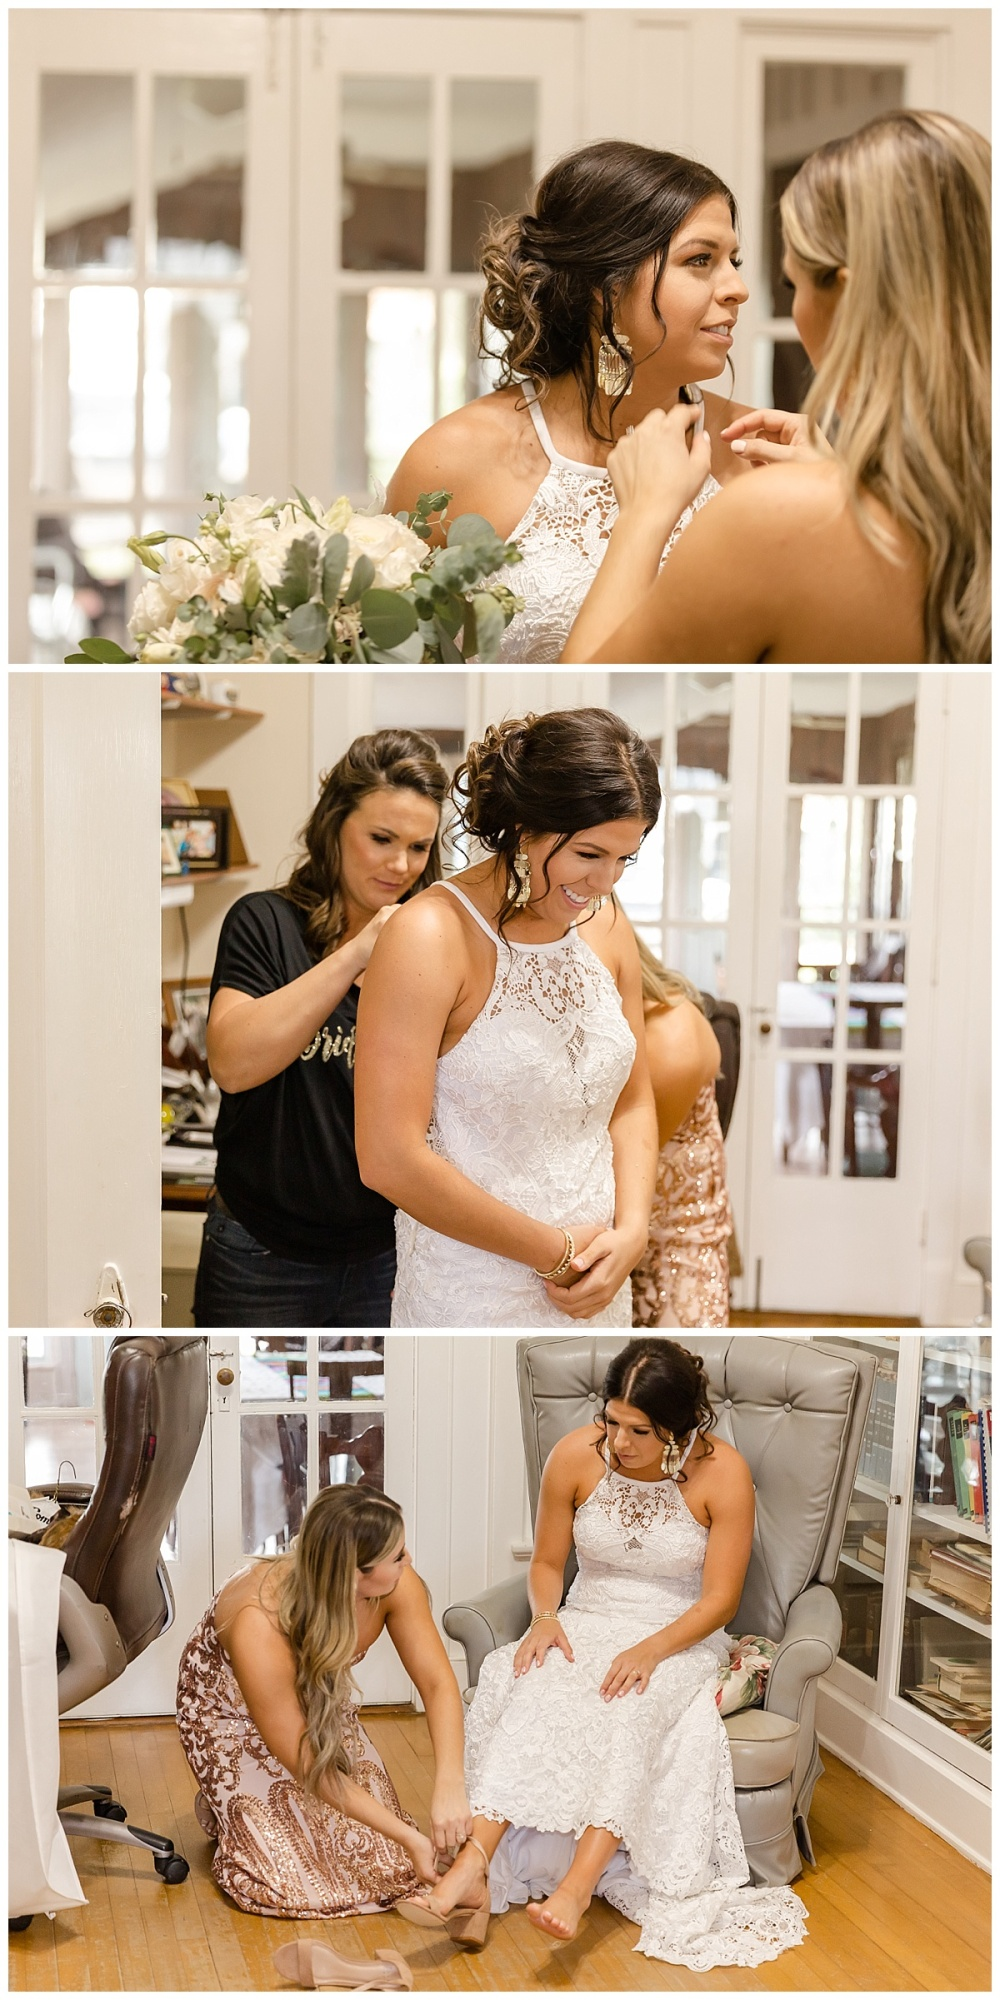 South-Texas-Wedding-Photographer-Rose-Gold-and-Navy-Theme-LaVernia-Bride-Groom-Carly-Barton-Photography_0030